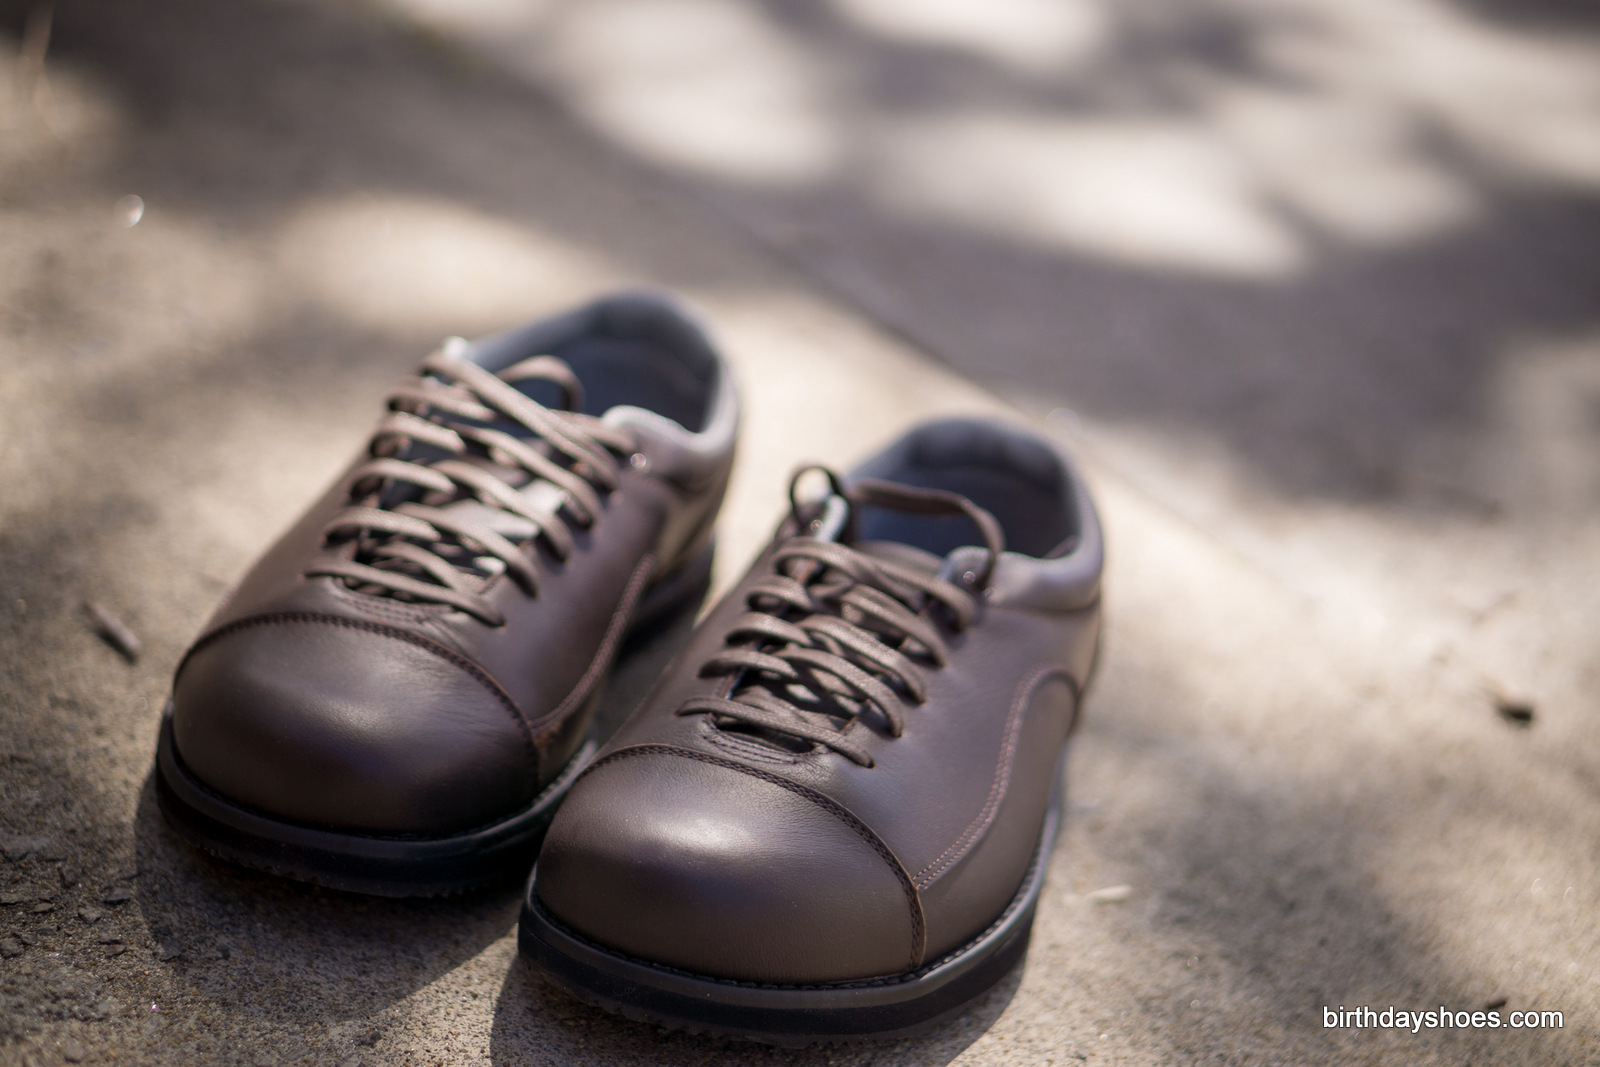 The classy, and more conventional-looking, minimalist dress shoe